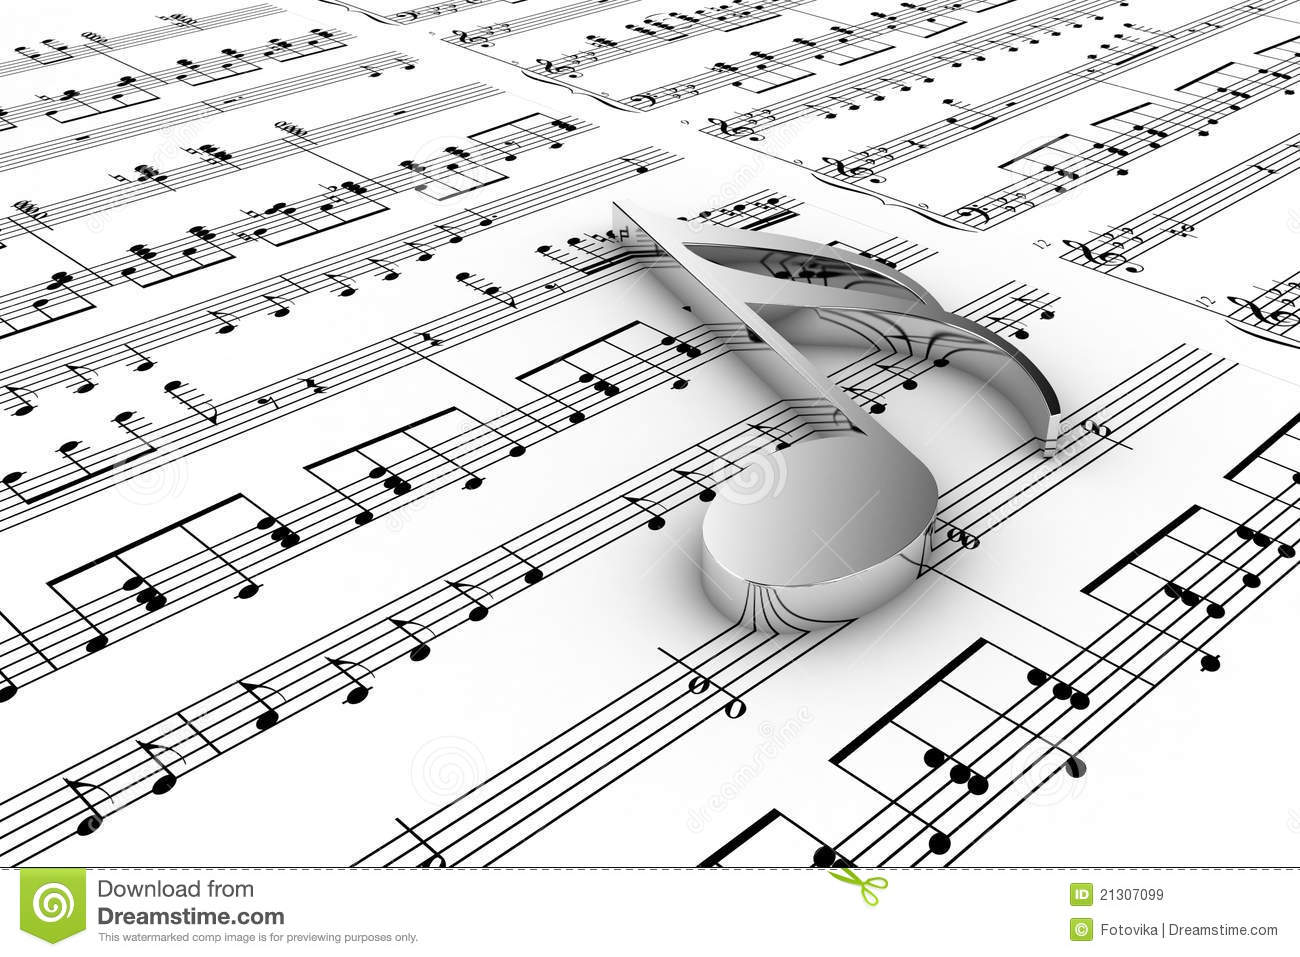 music musical note written notes background silver royalty teacher illustration gograph illustrations dreamstime